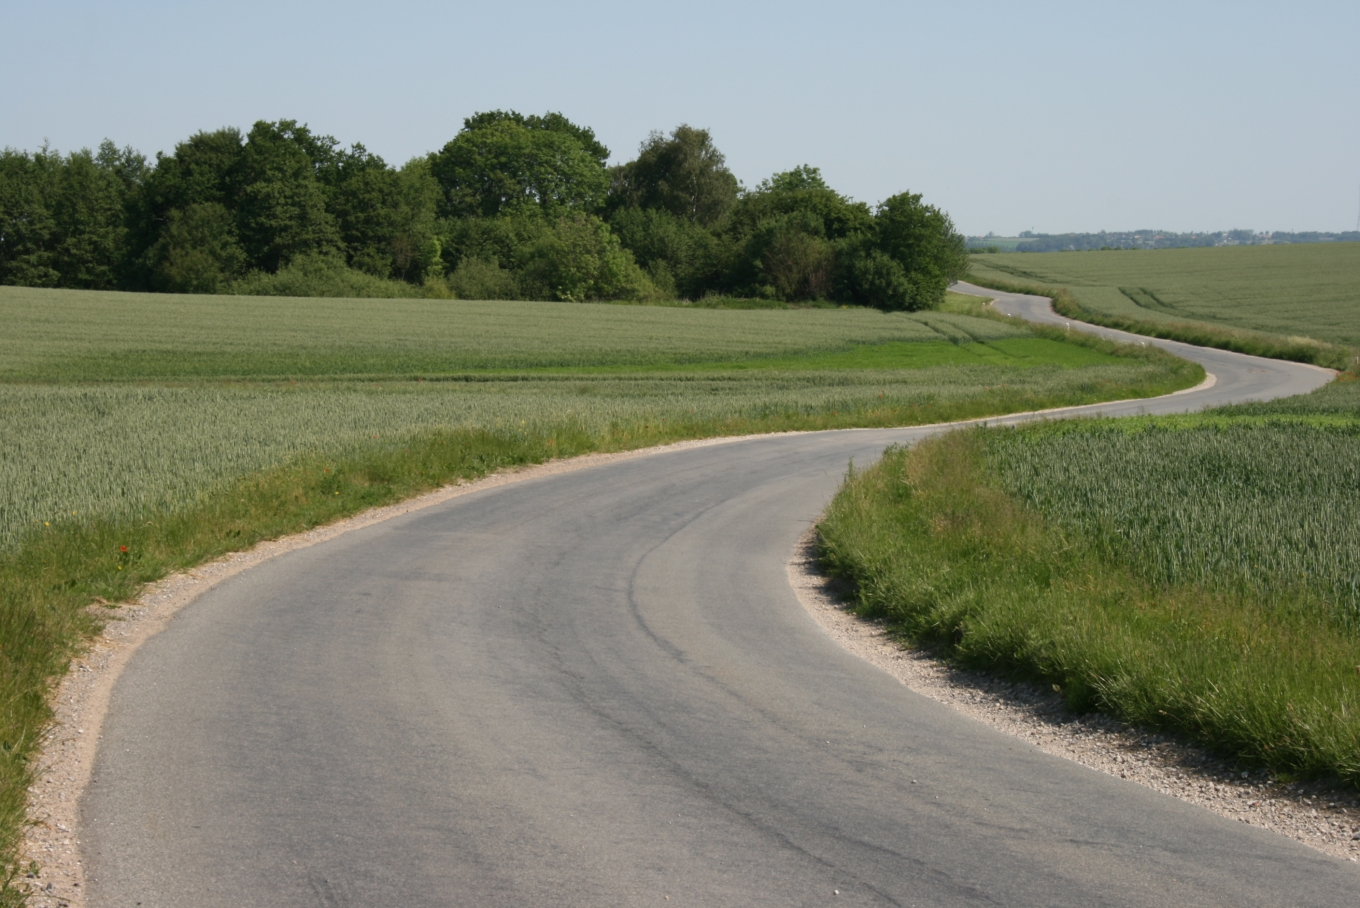 Winding road without personal growth